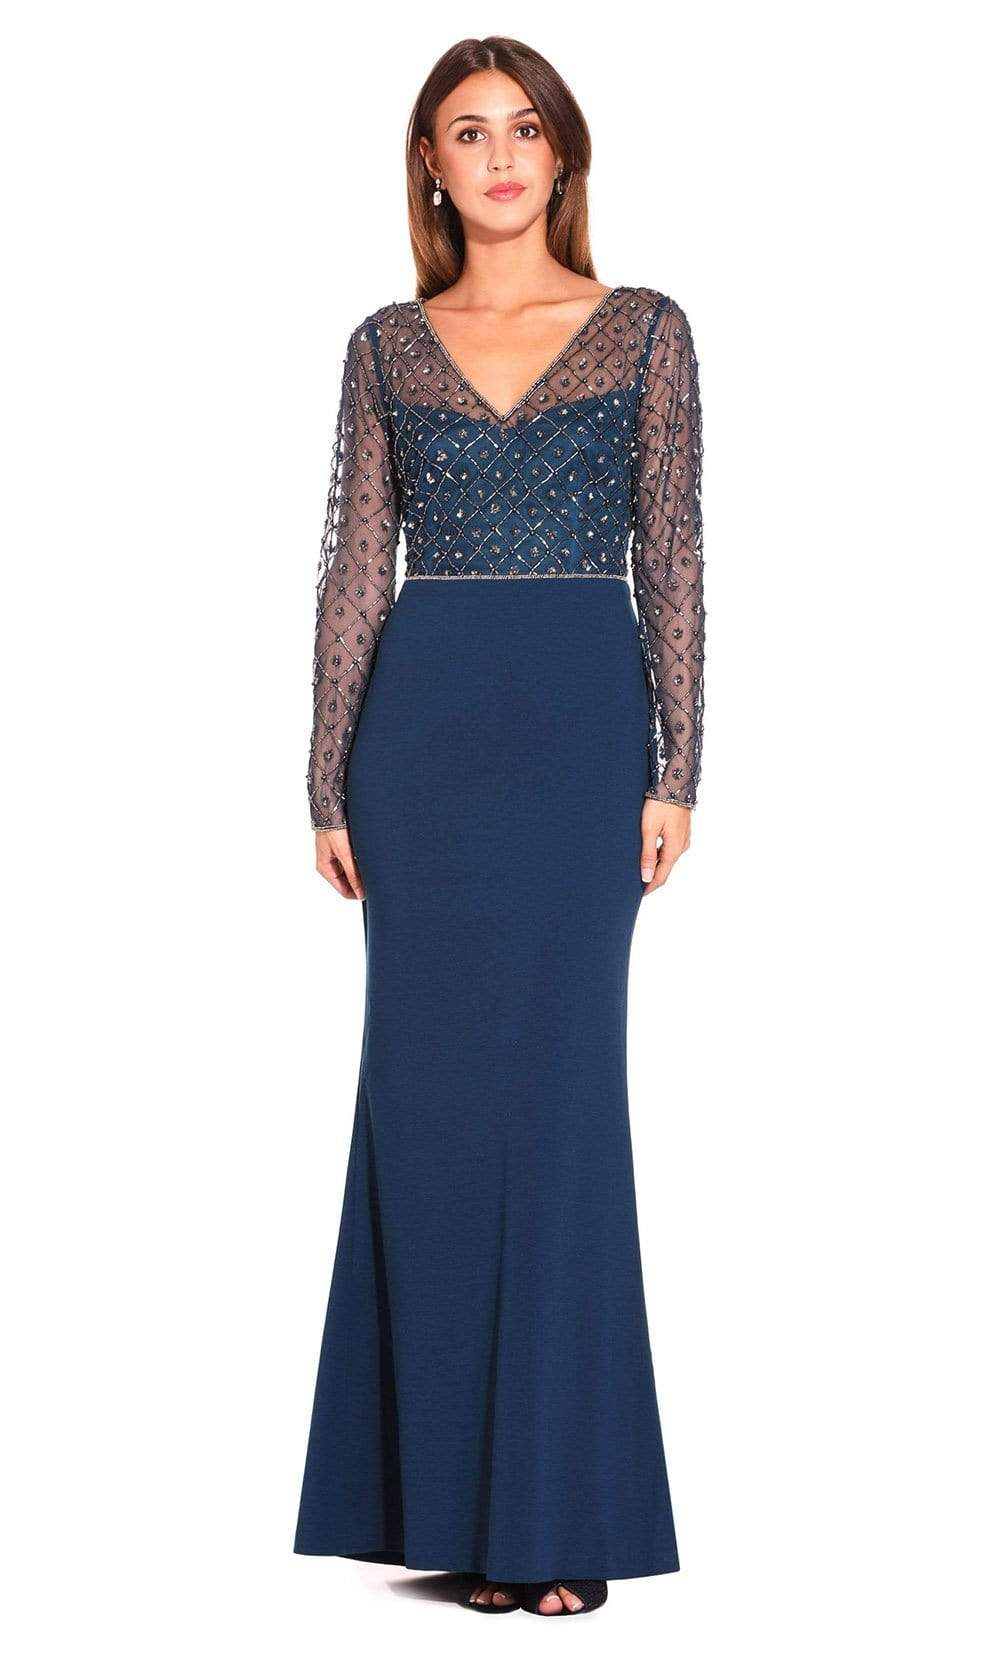 Adrianna Papell - AP1E203730 Embellished V-Neck Evening Gown from Adrianna Papell